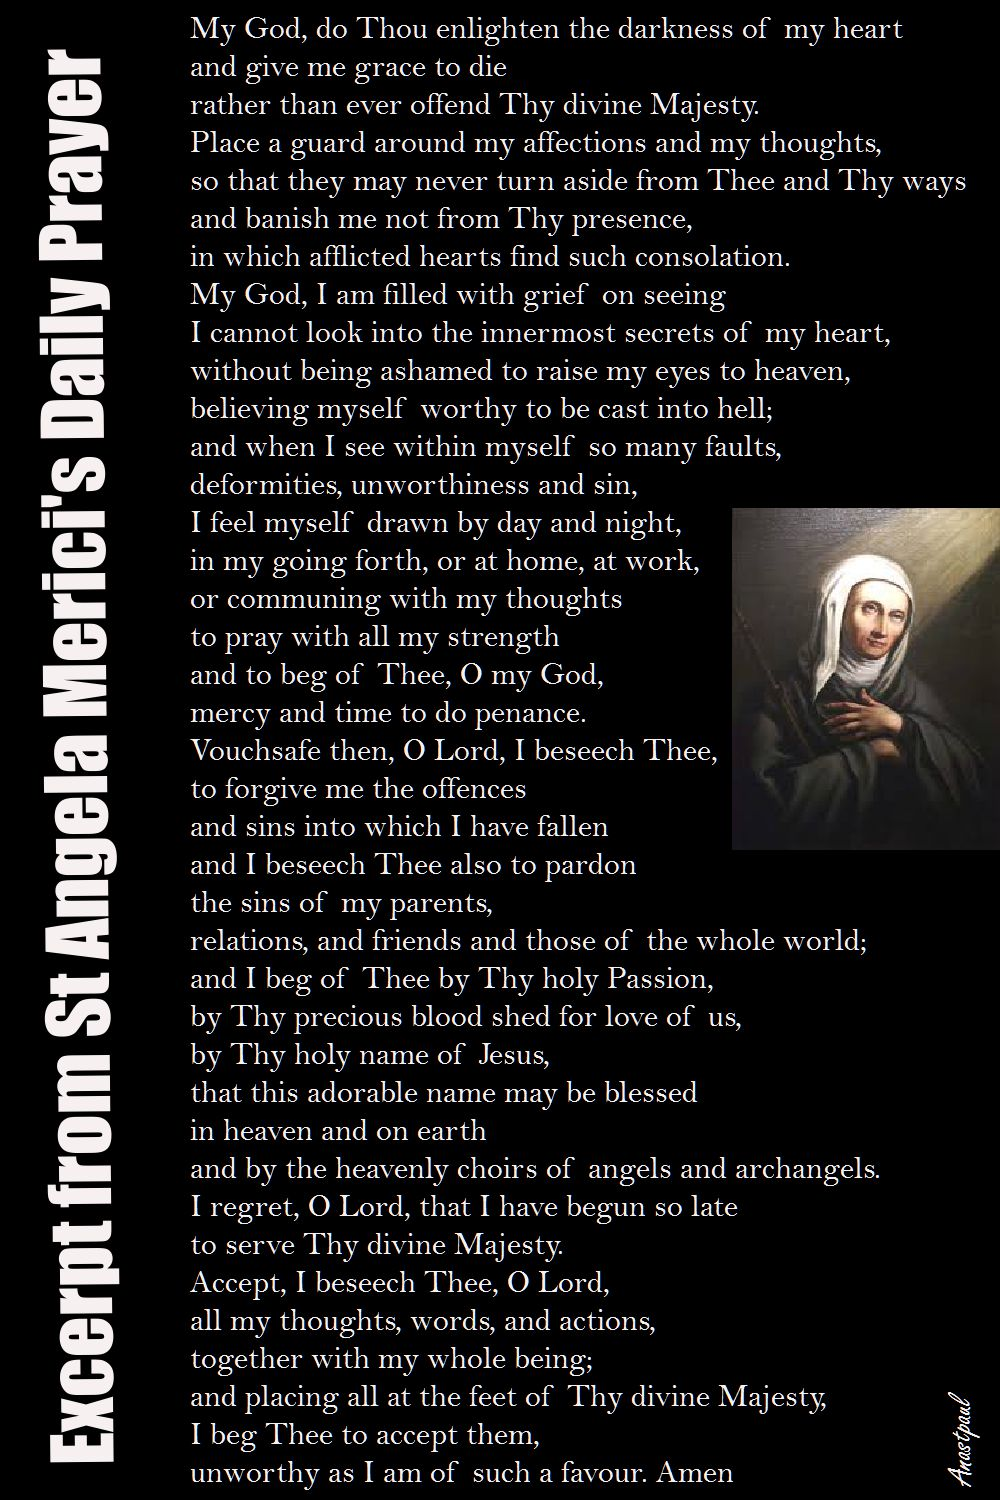 prayer-of-st-angela-merici